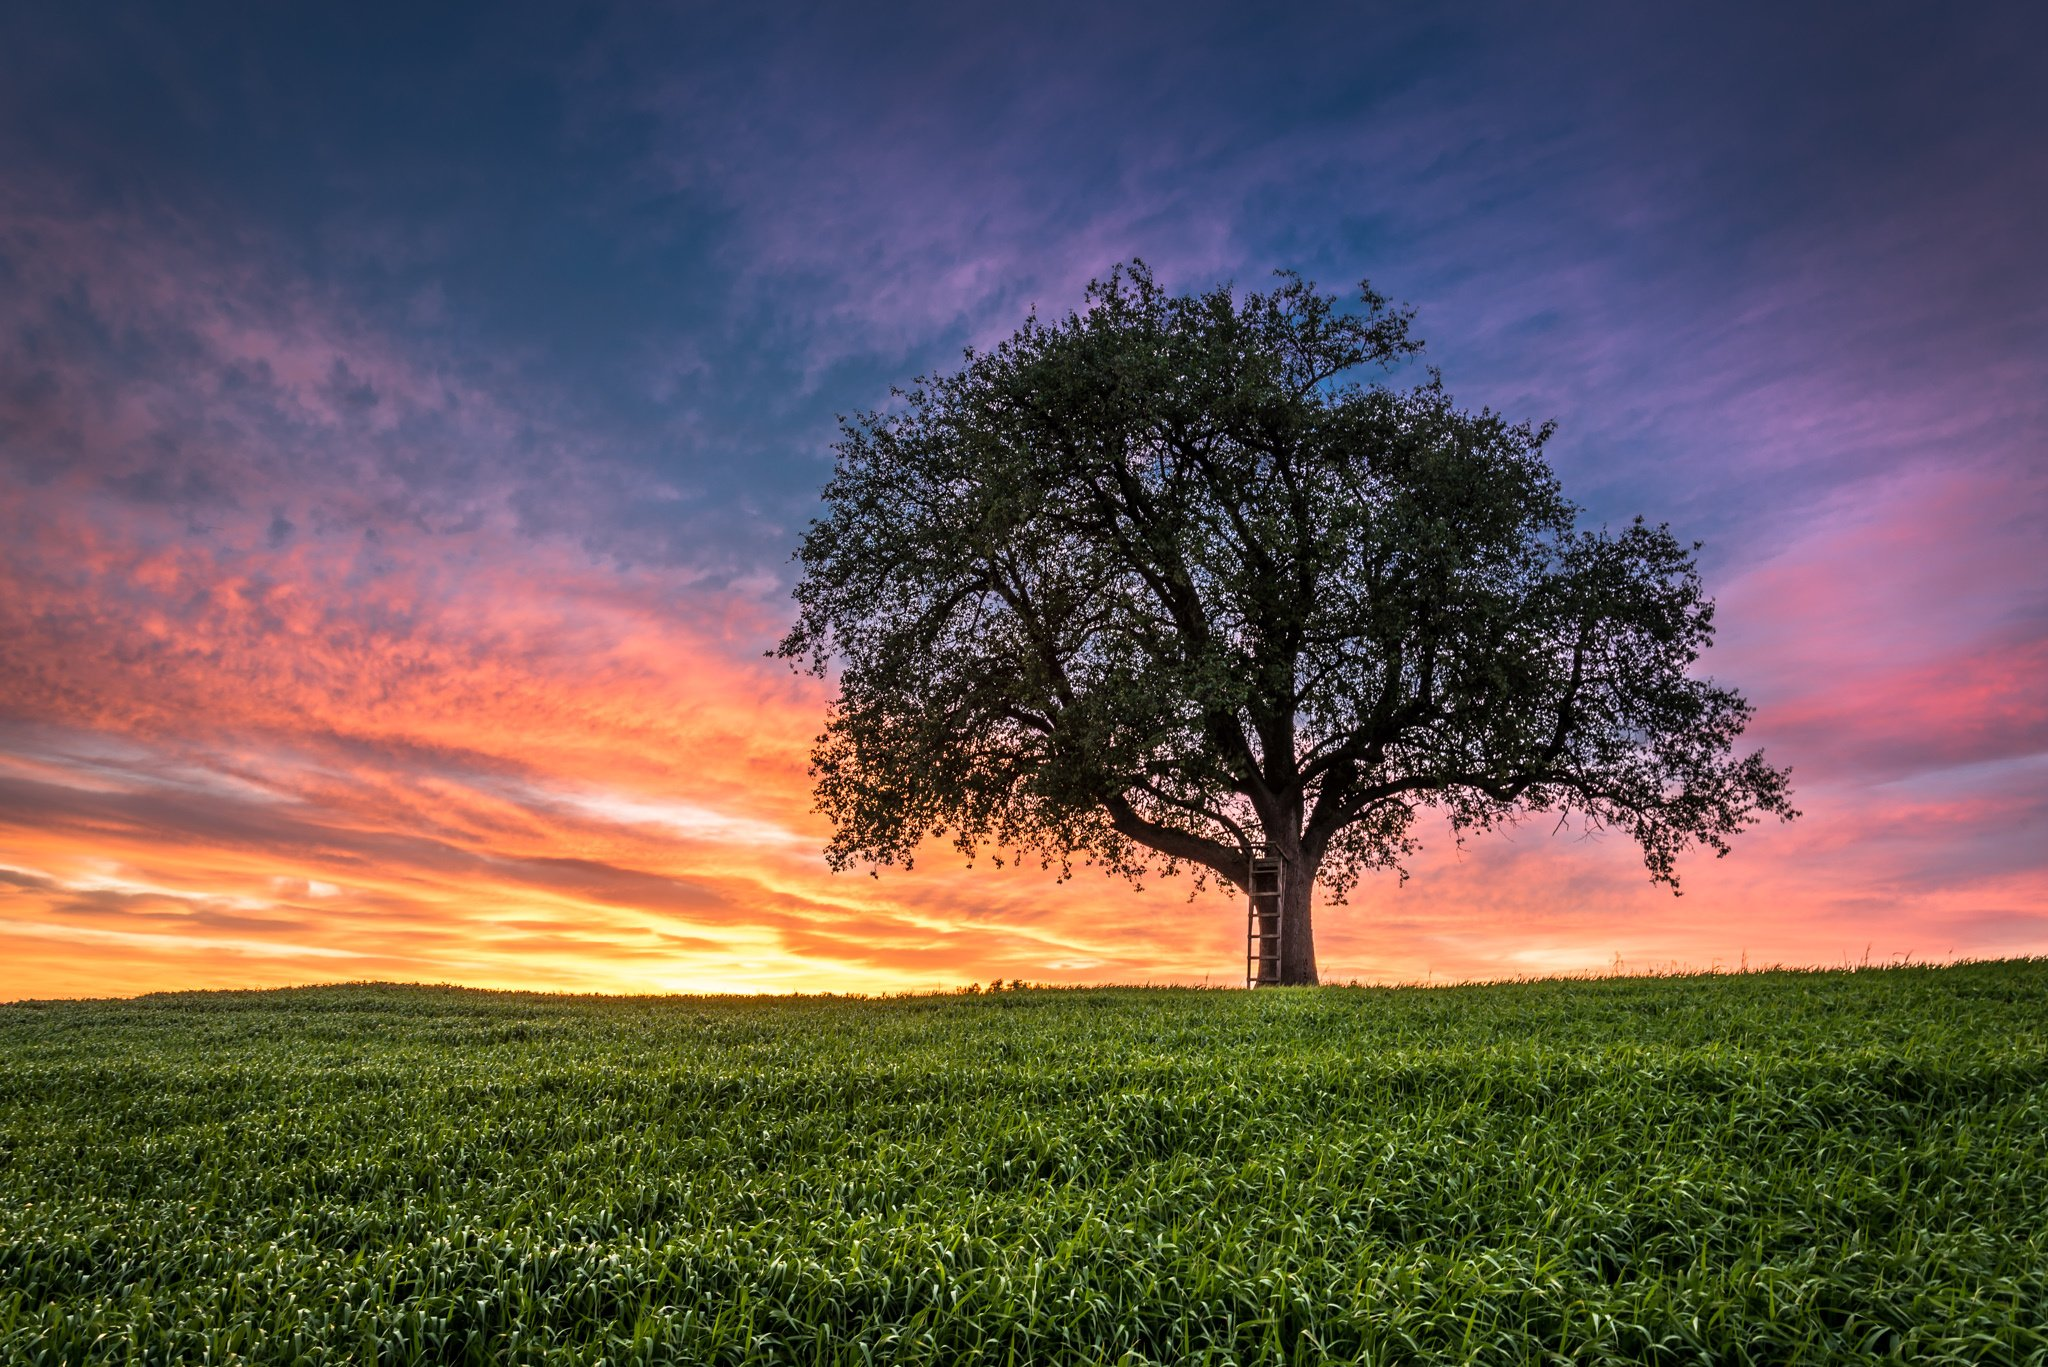 Sunset field tree landscape wallpaper 2048x1367 282390 for Landscape trees